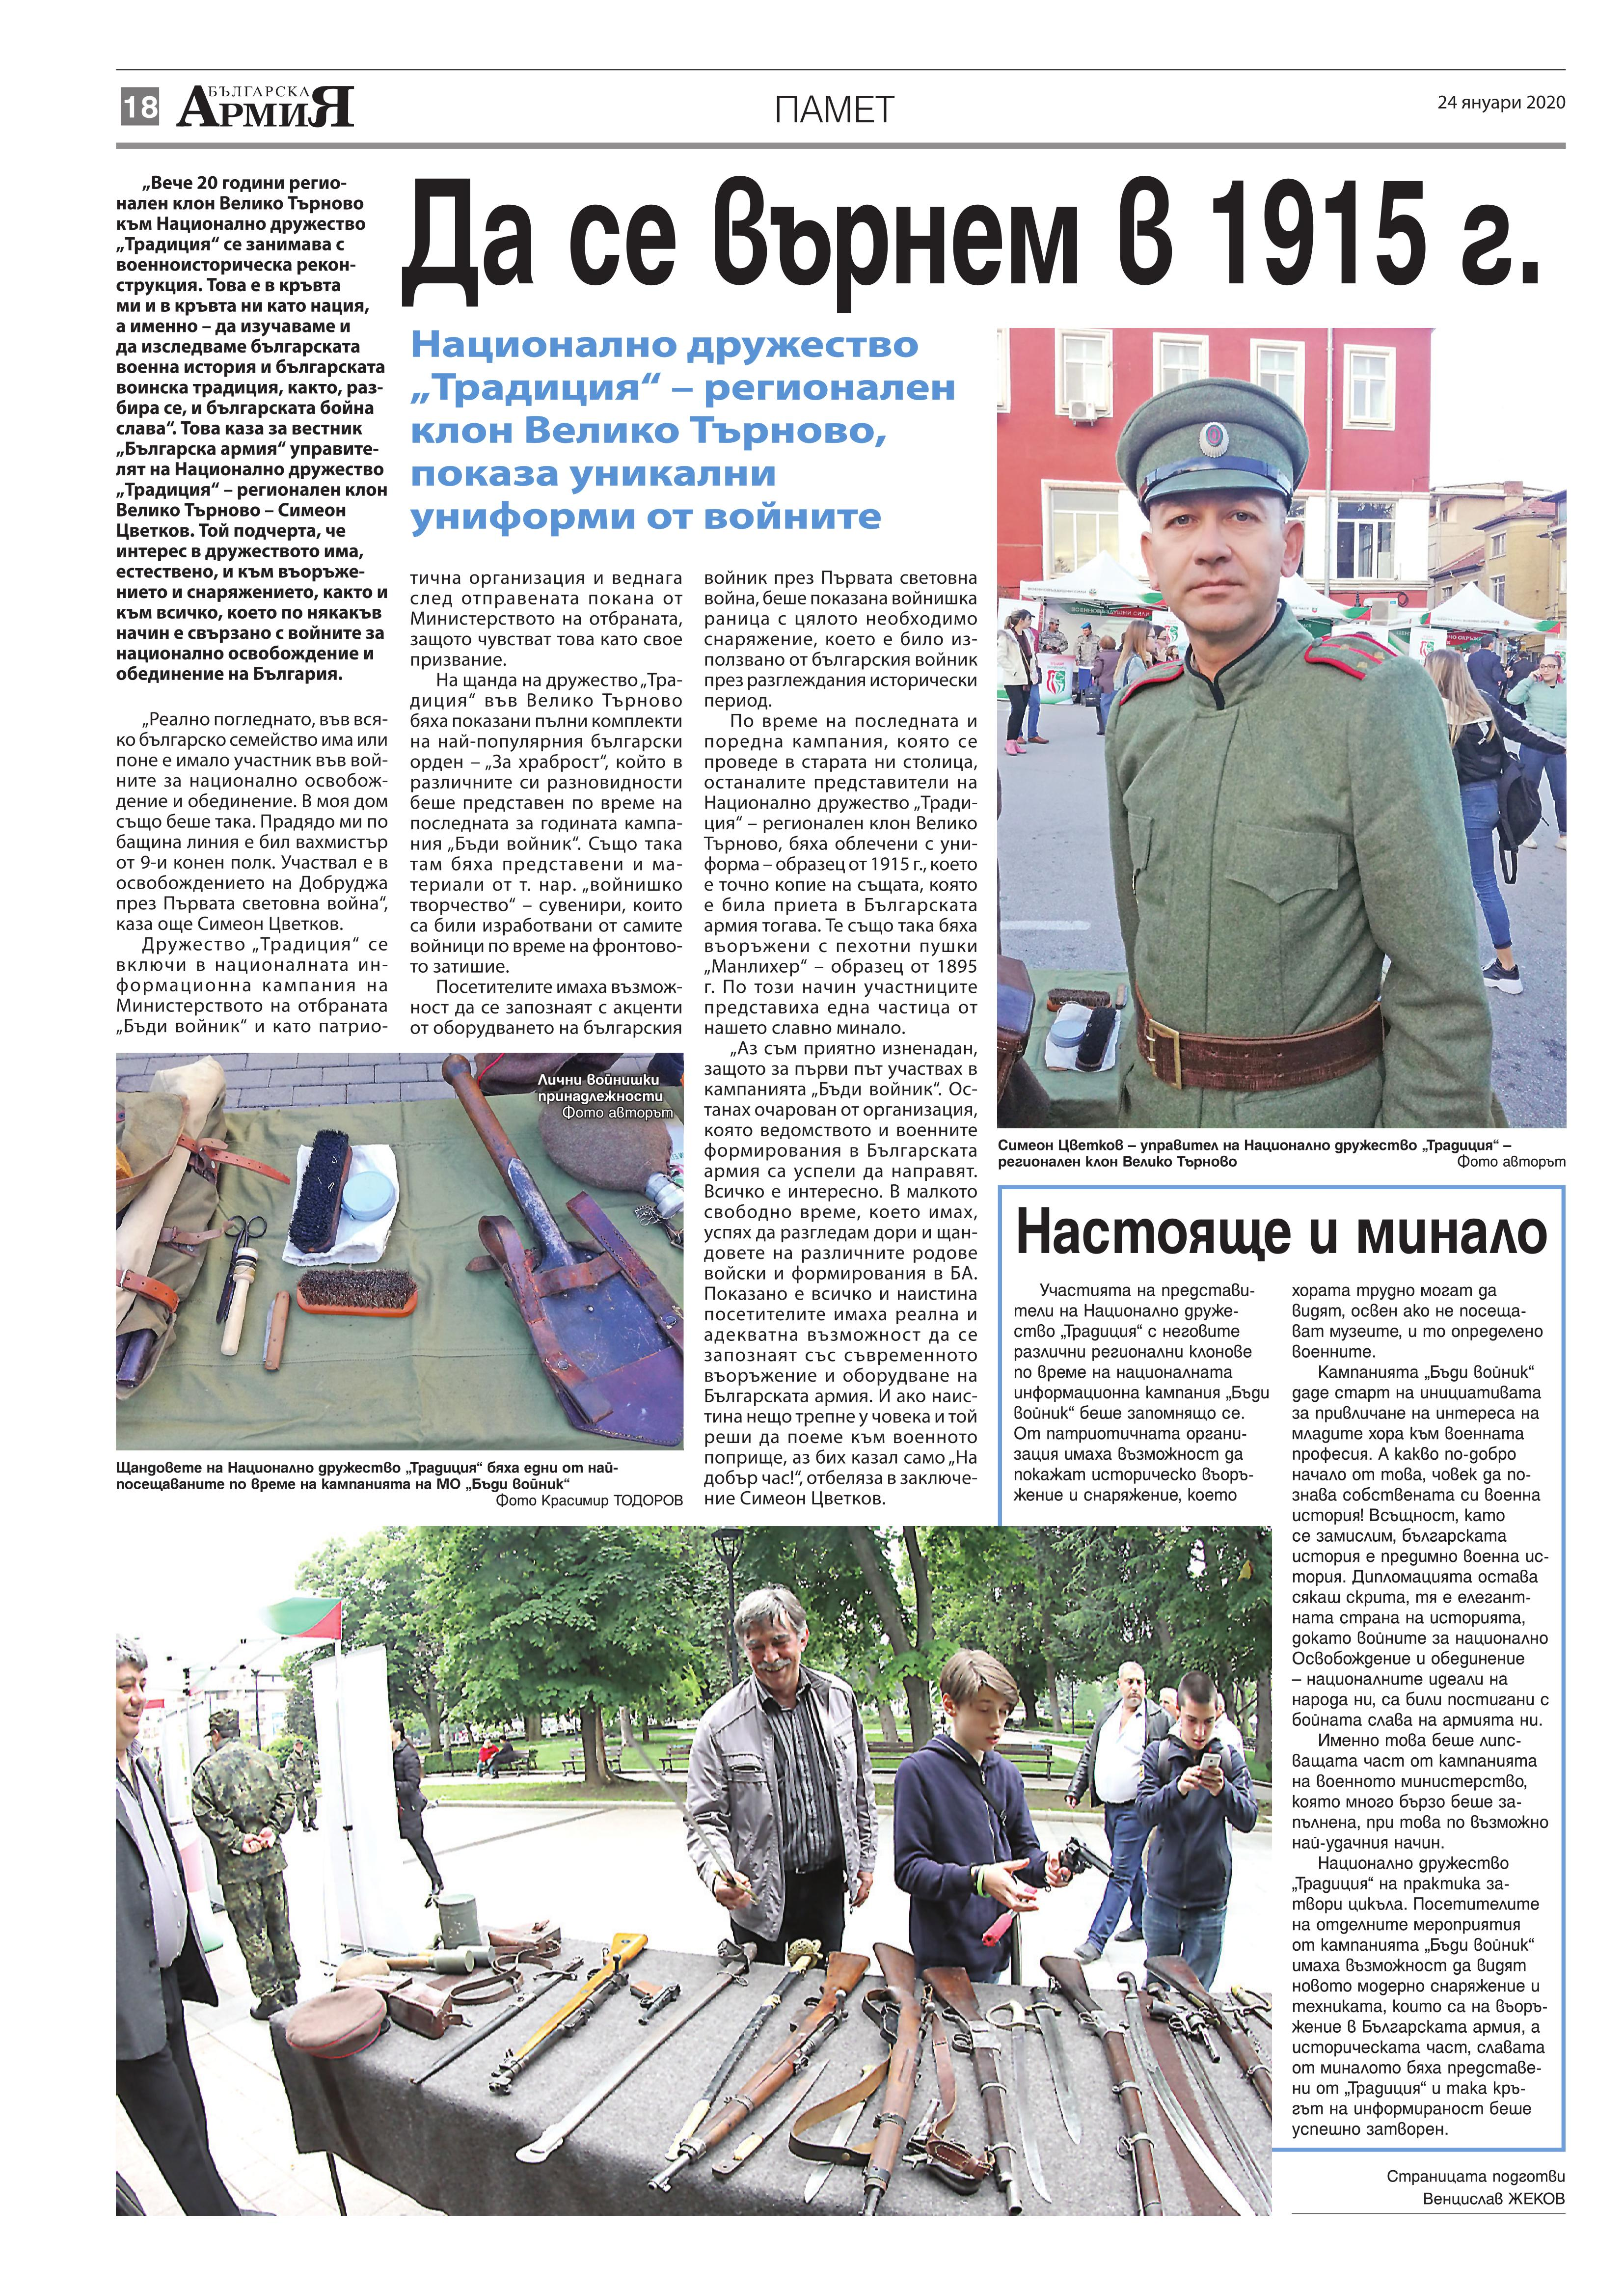 https://www.armymedia.bg/wp-content/uploads/2015/06/18.page1_-124.jpg